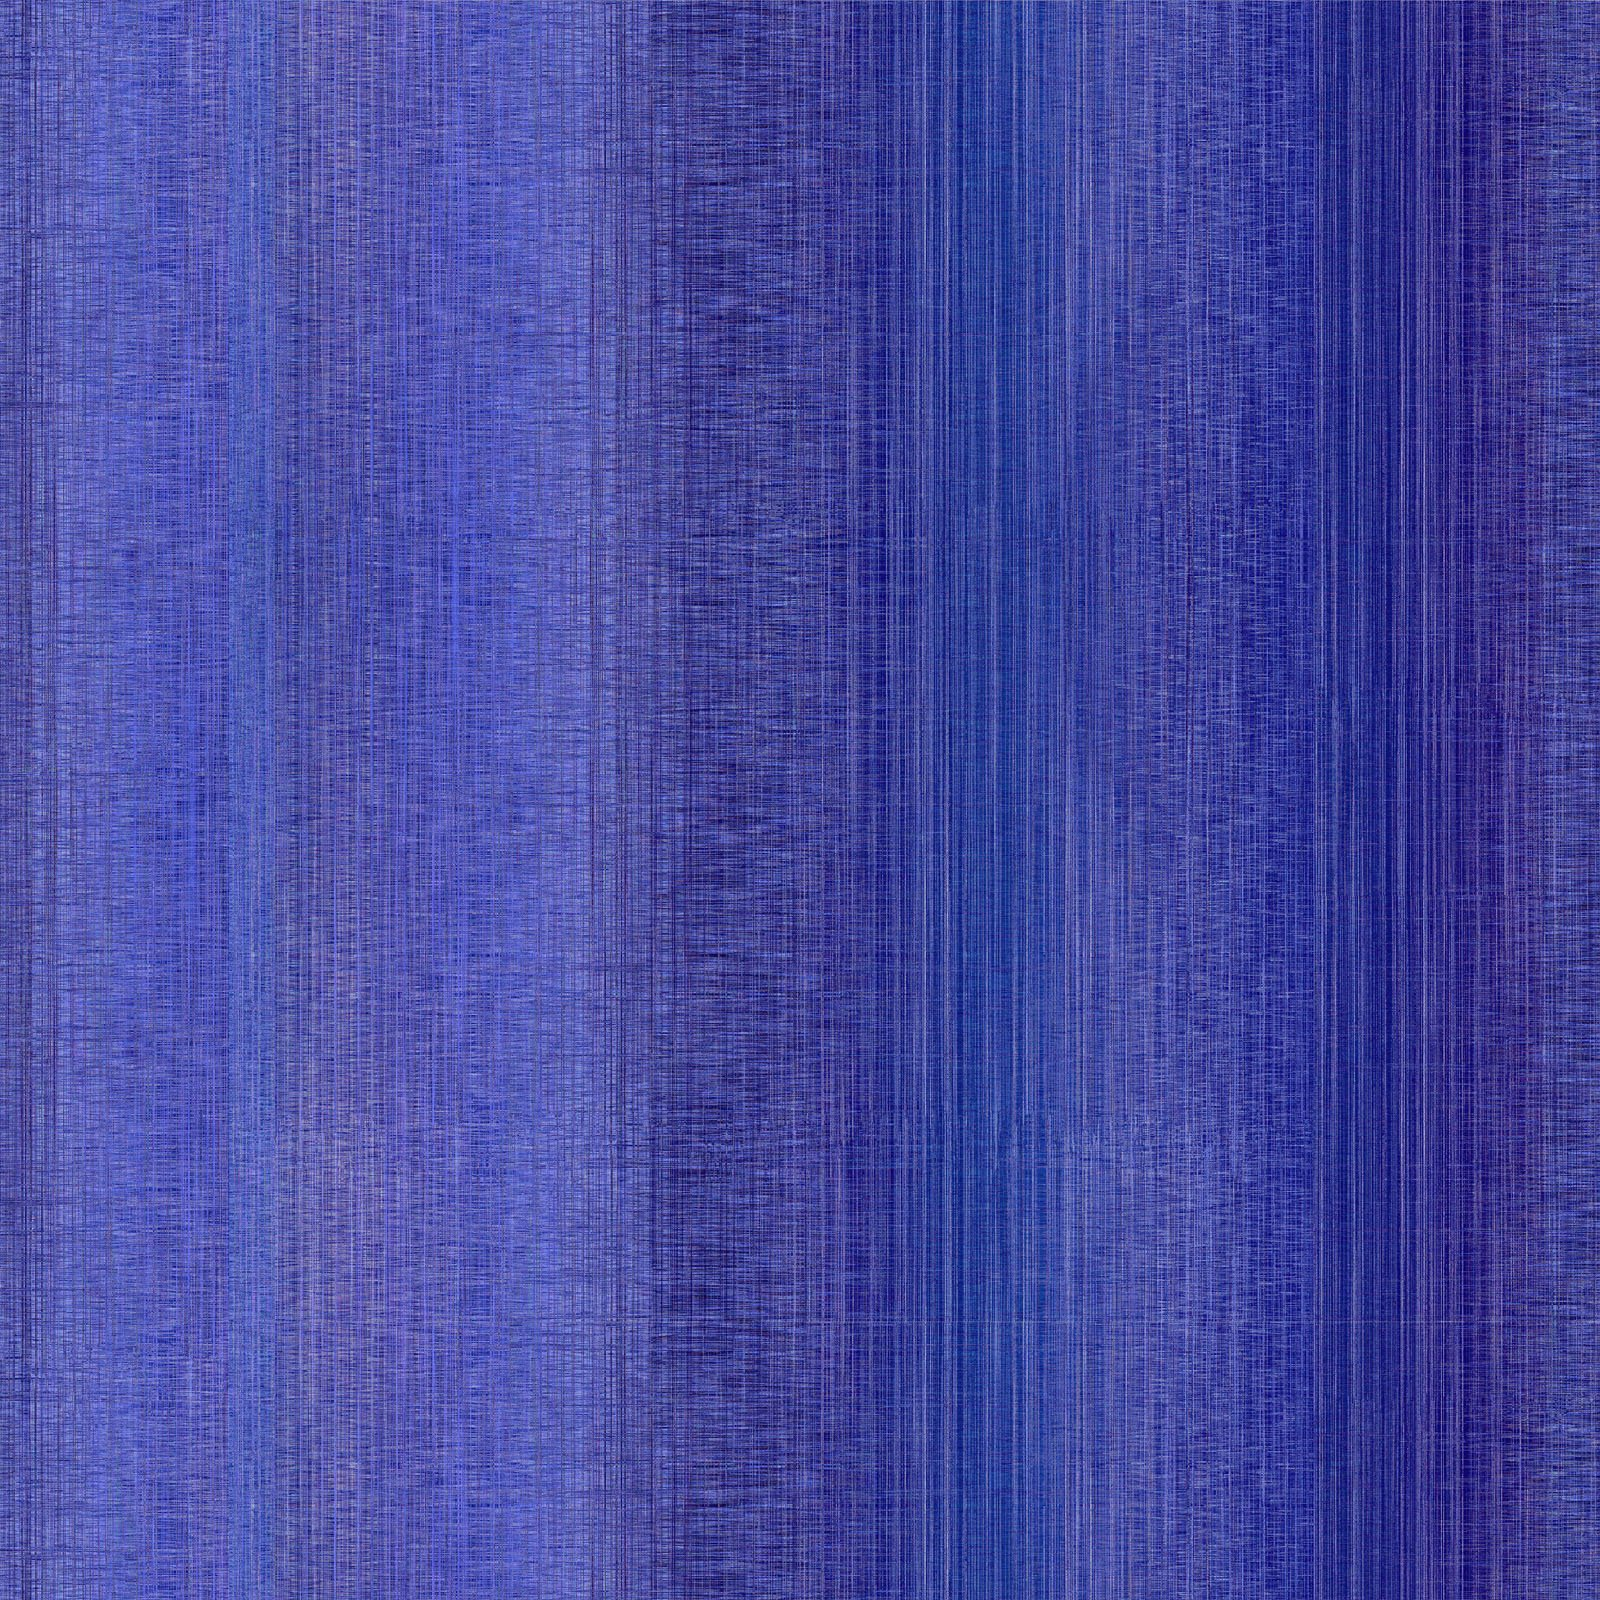 OMBR-4498 B - OMBRE 108 DIGITAL BY P&B BOUTIQUE BLUE - ARRIVING IN AUGUST 2021